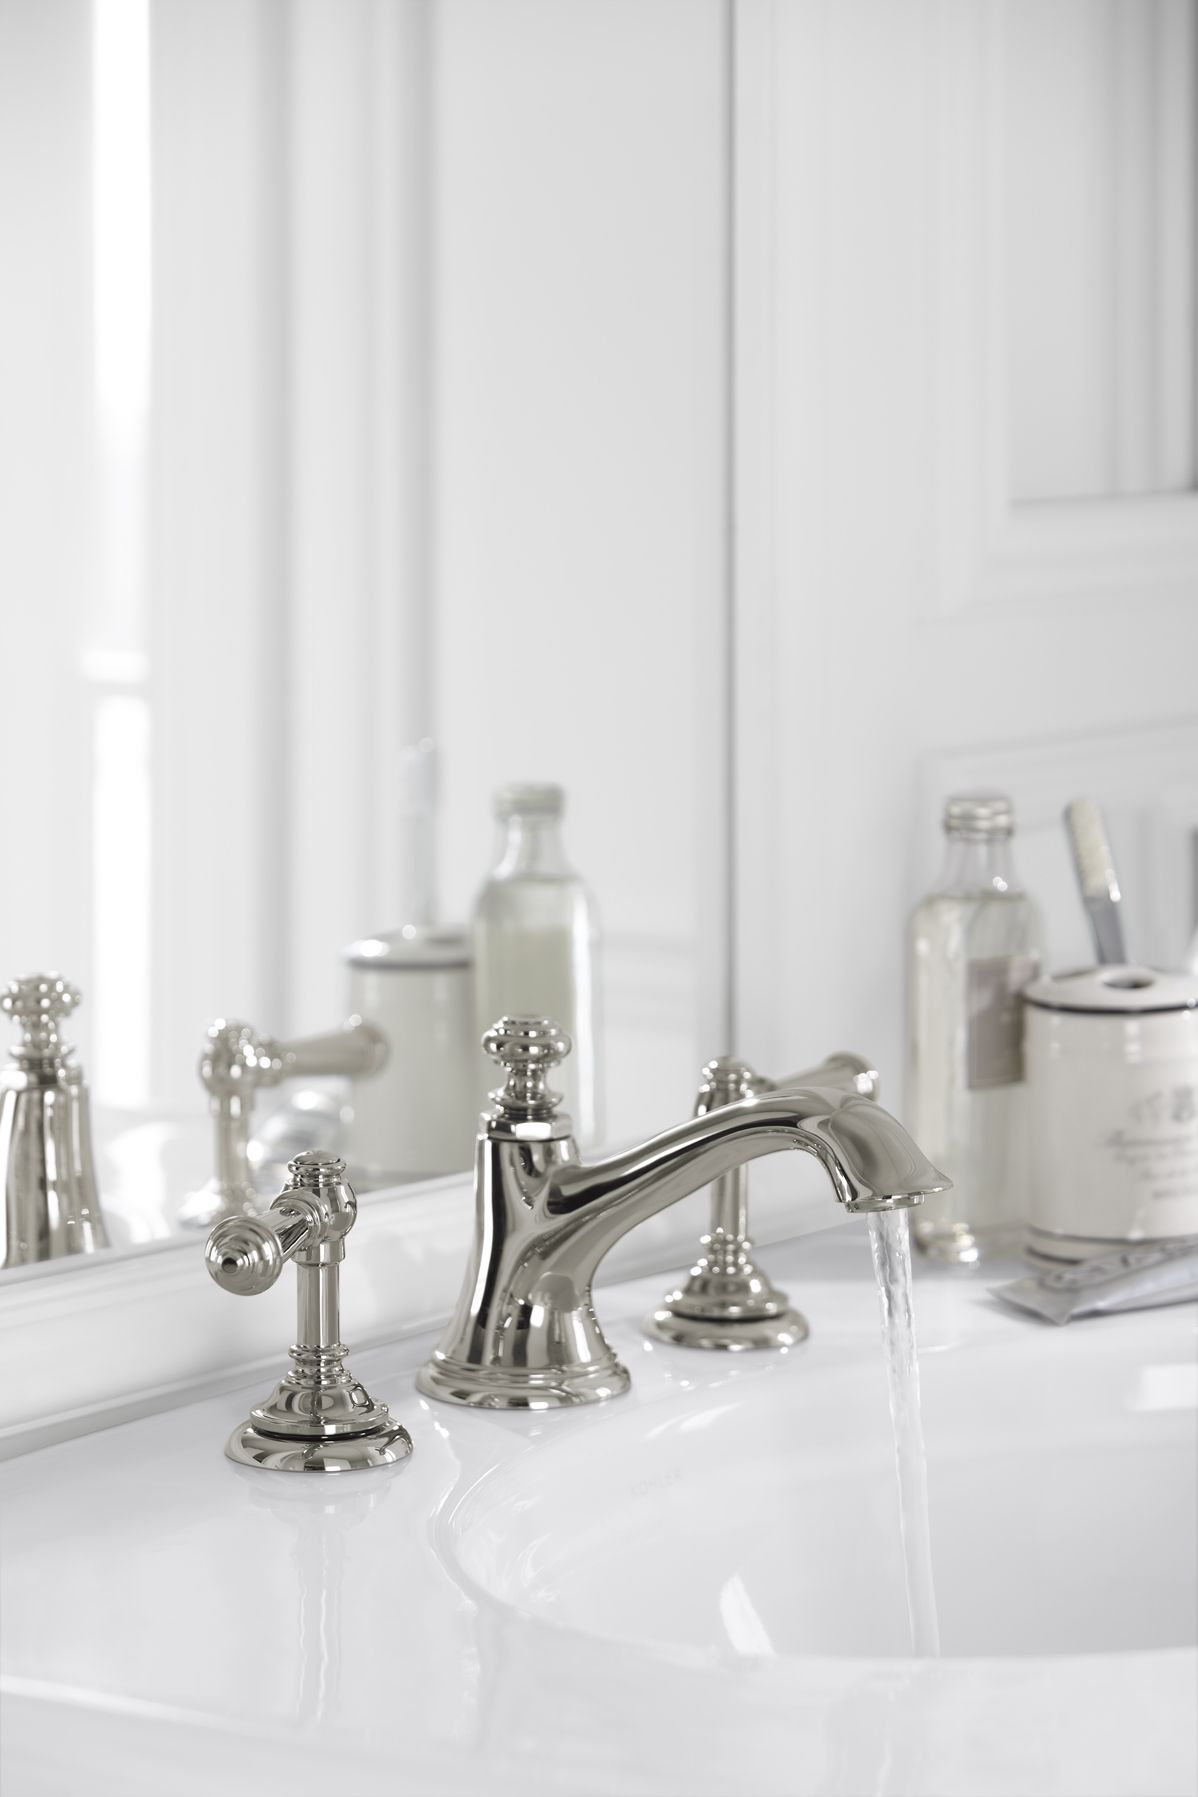 Artifacts Faucet Collection by Kohler. | Bathroom Sink Faucet ...